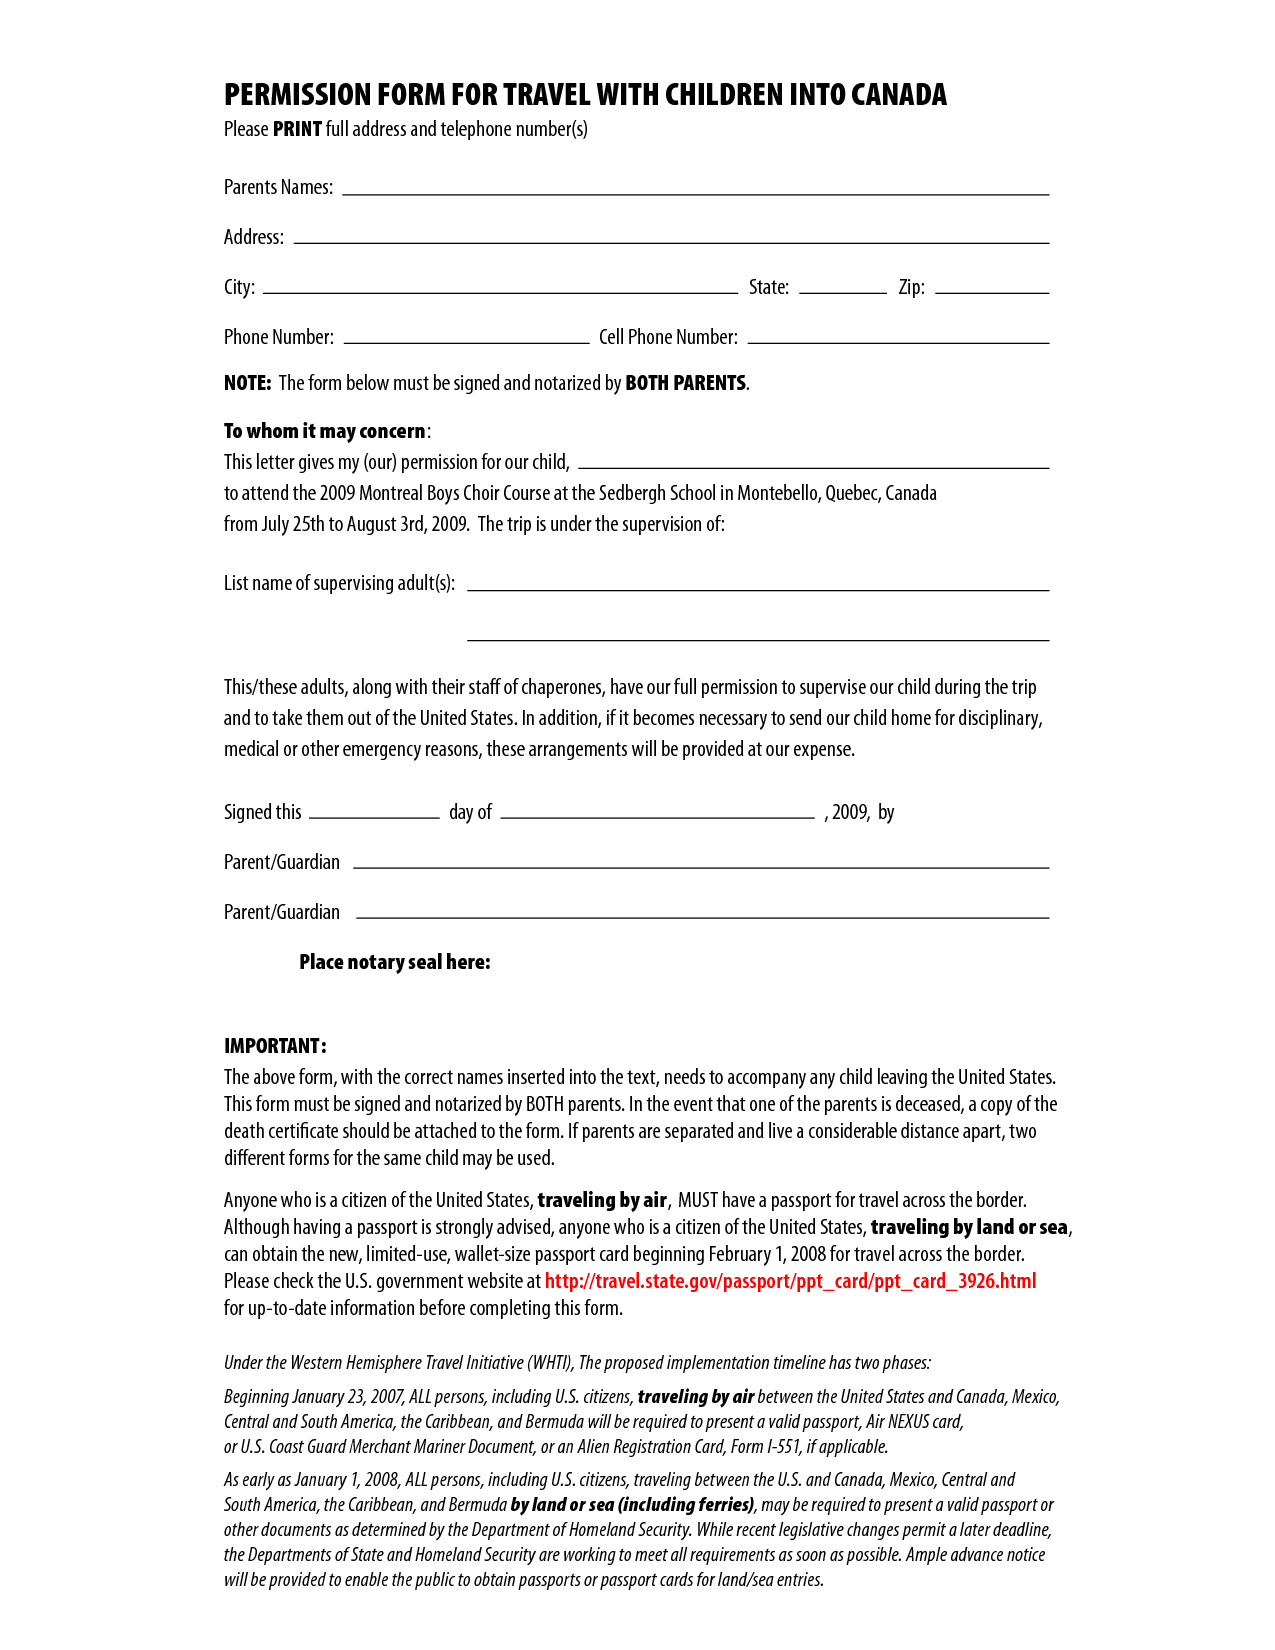 Permission form for travel with children into canada by csgirla child international travel consent how to write a letter of permissio child travel consent mexico le crossing borders alone with kids travel consent altavistaventures